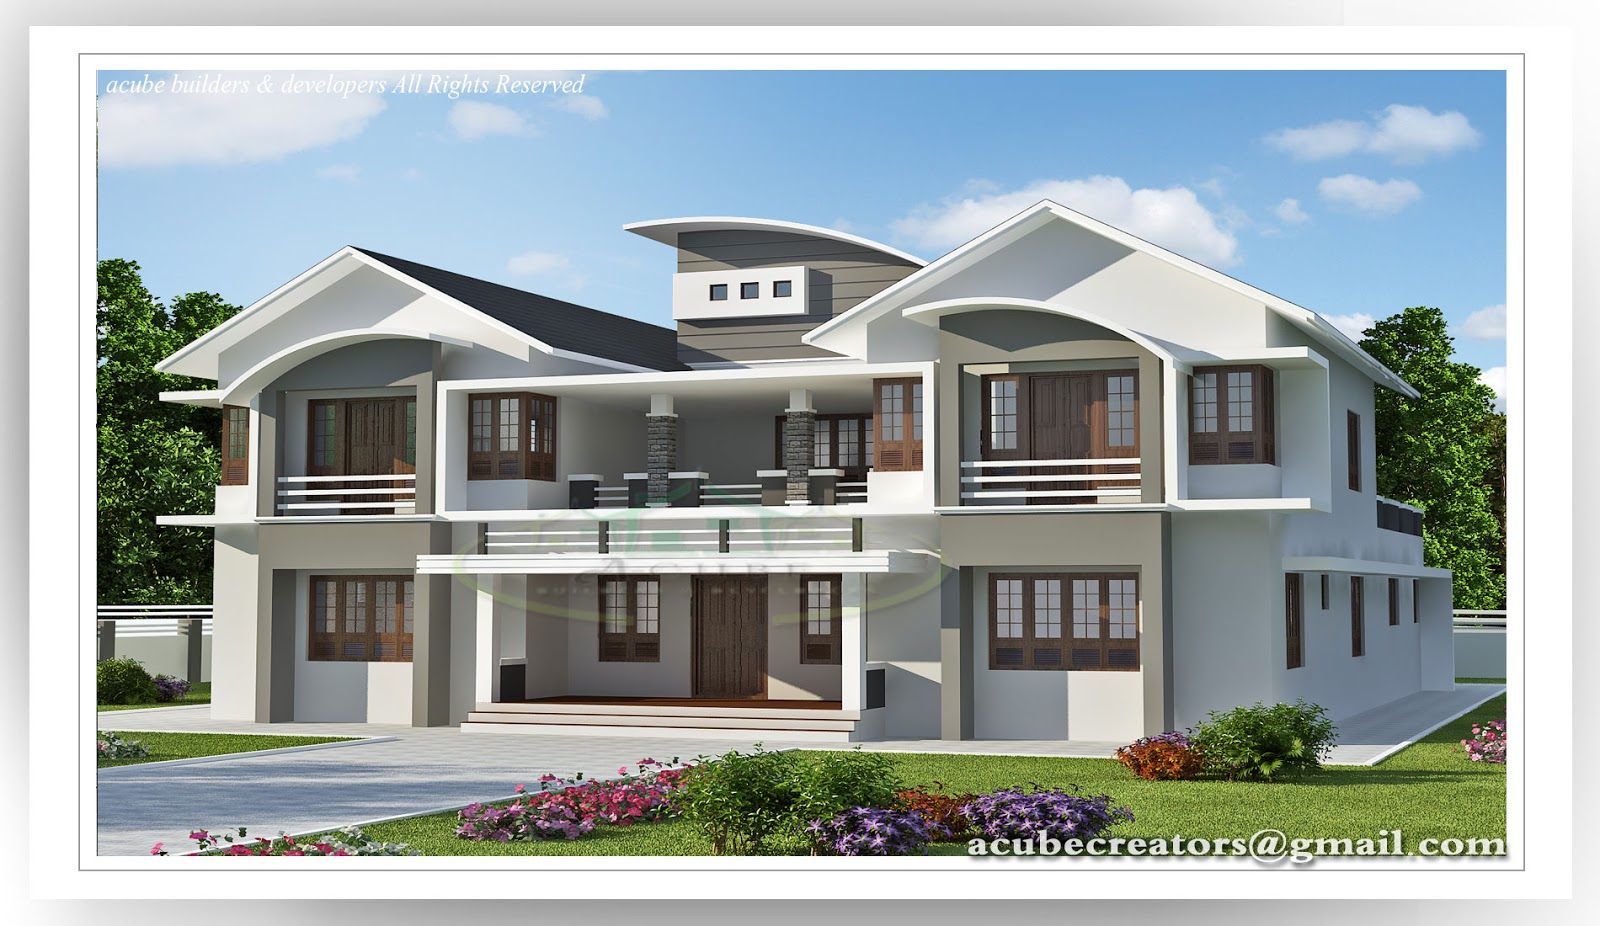 6 bedroom luxury villa design 5091 plan 149 for Luxury two bedroom house plans